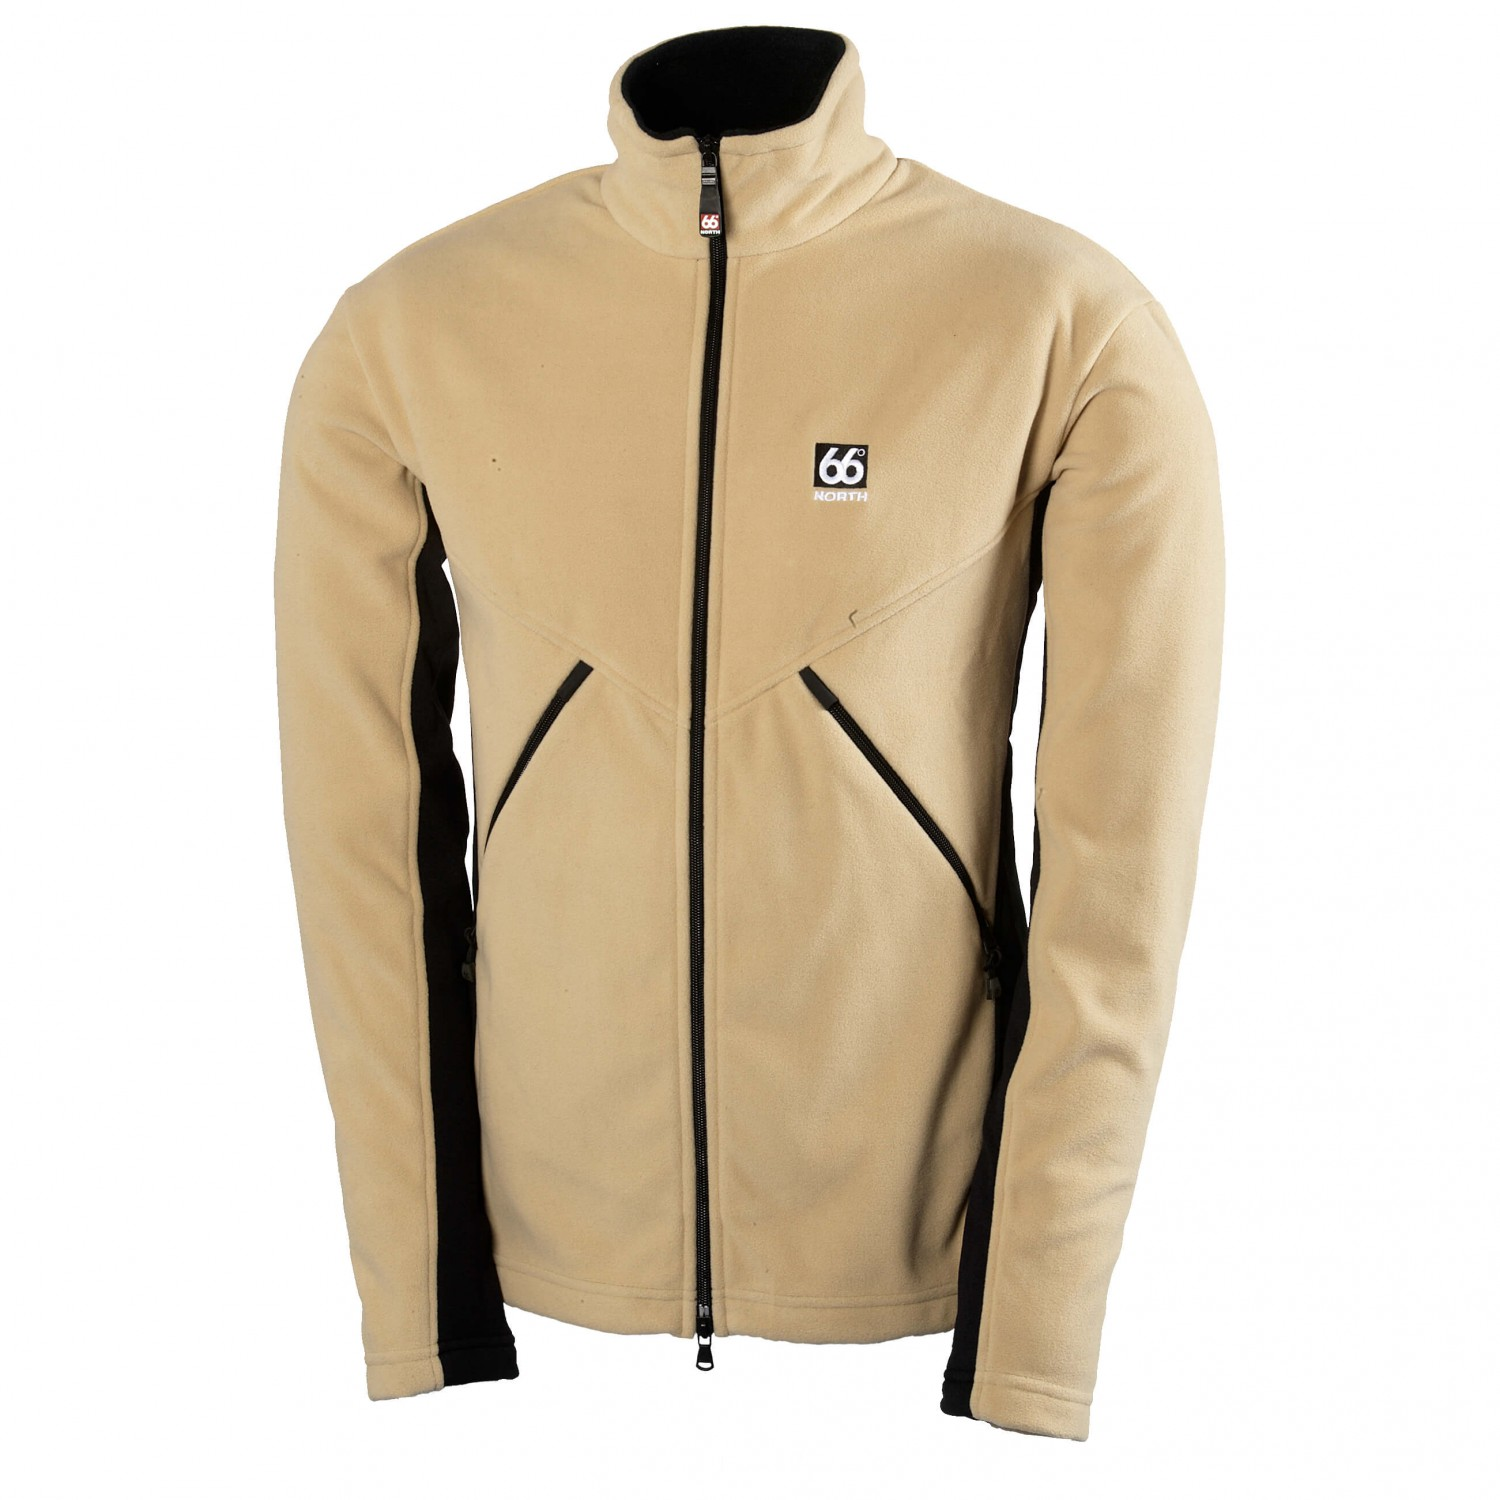 cd45e1aef 66 North - Askja Light Jacket - Fleece jacket